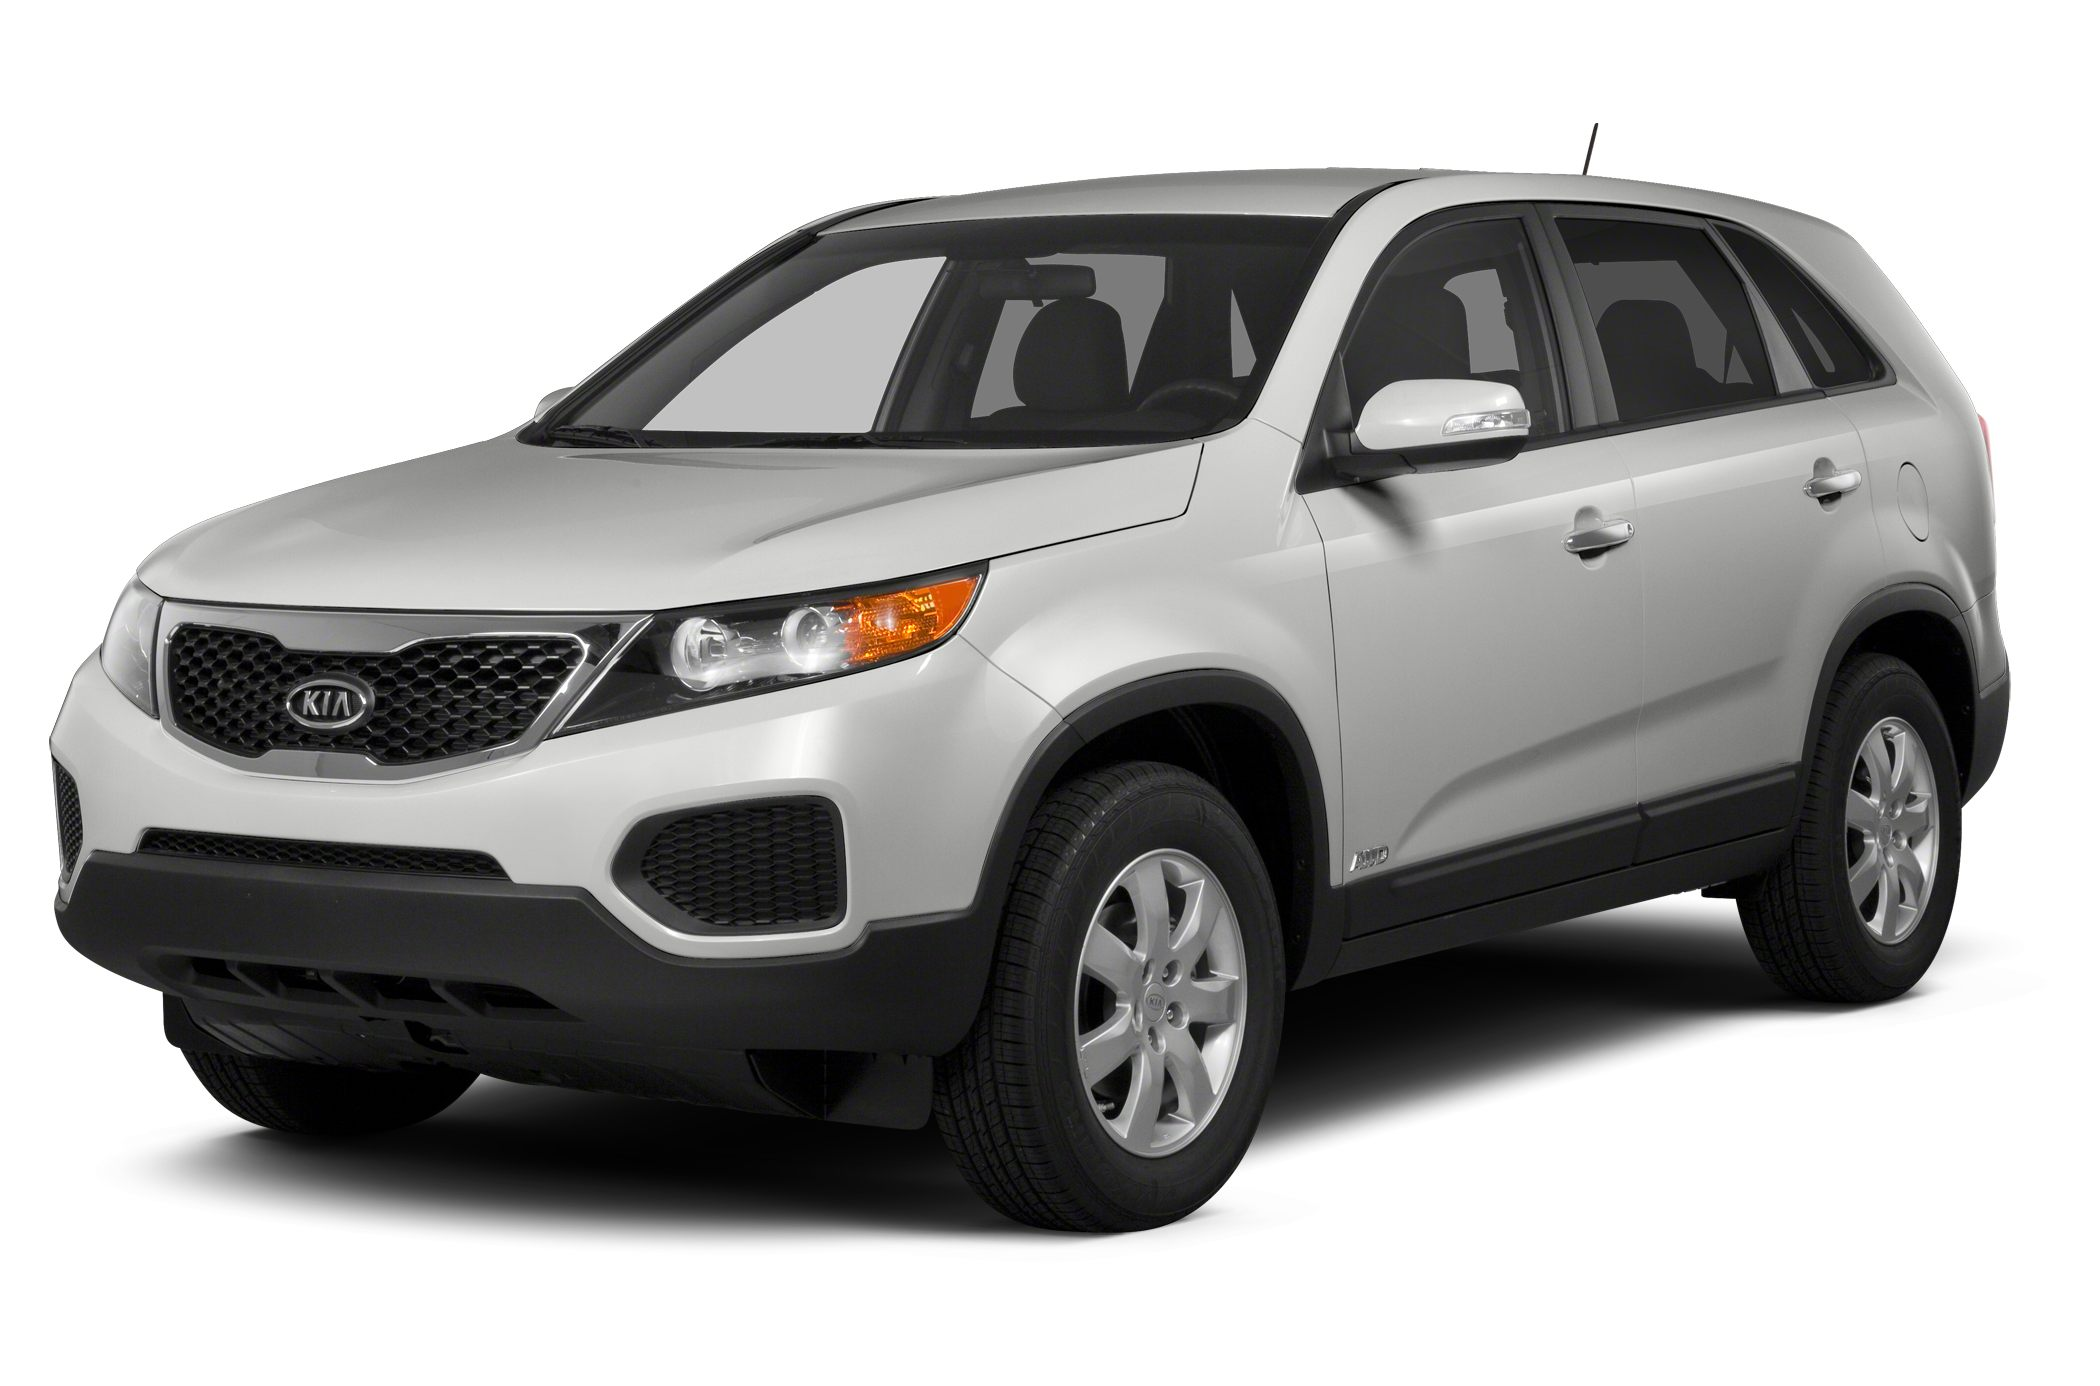 2011 Kia Sorento LX SUV for sale in Nashville for $15,694 with 74,176 miles